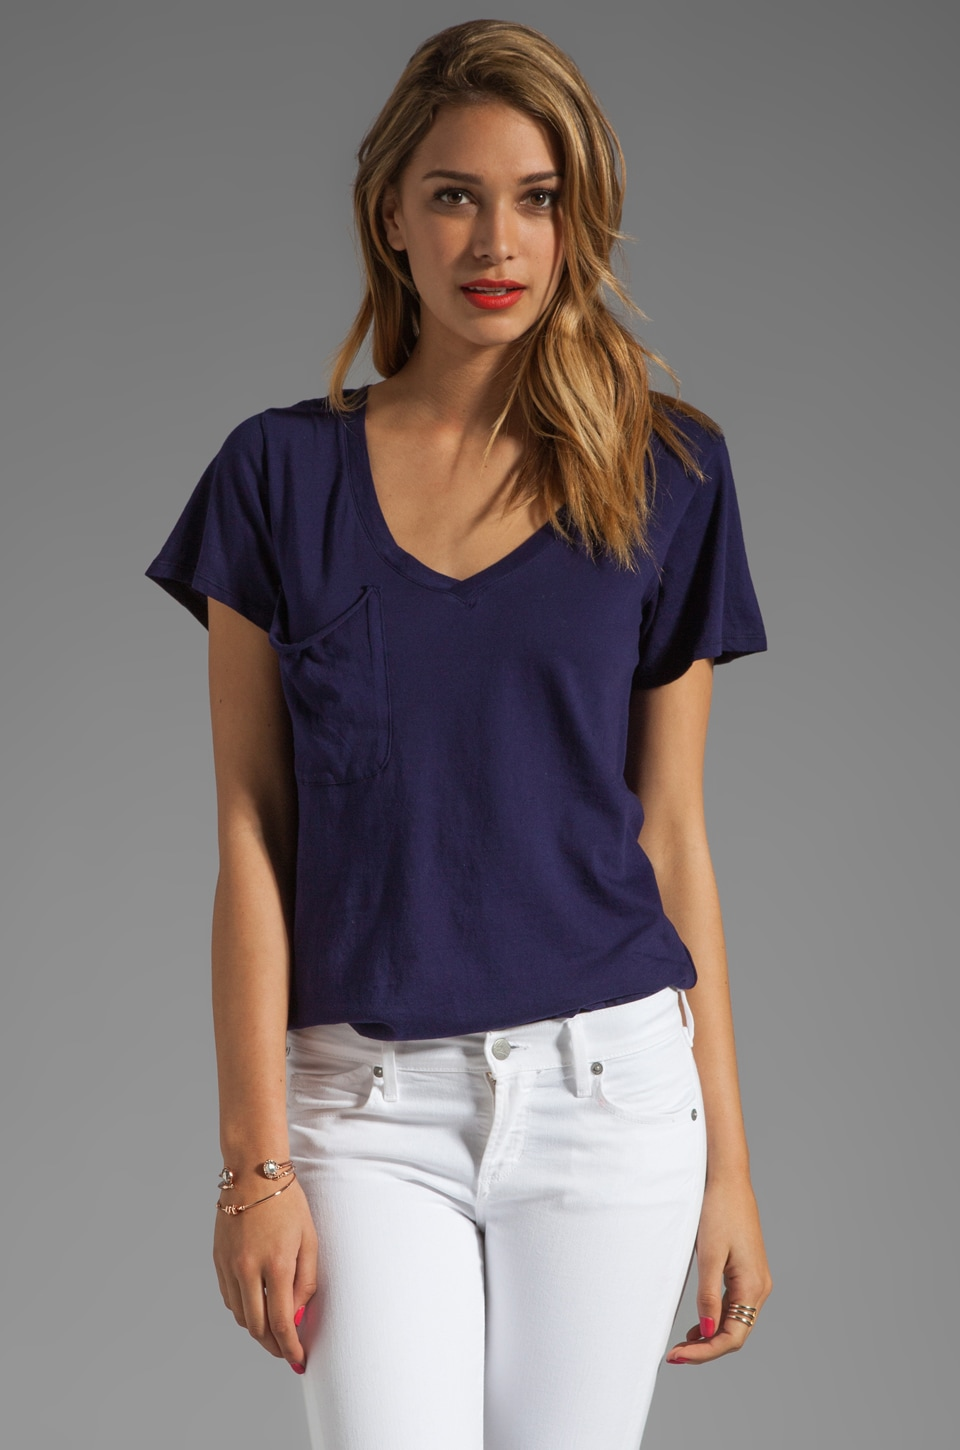 Bobi Light Weight Jersey V Pocket Tee in Yacht